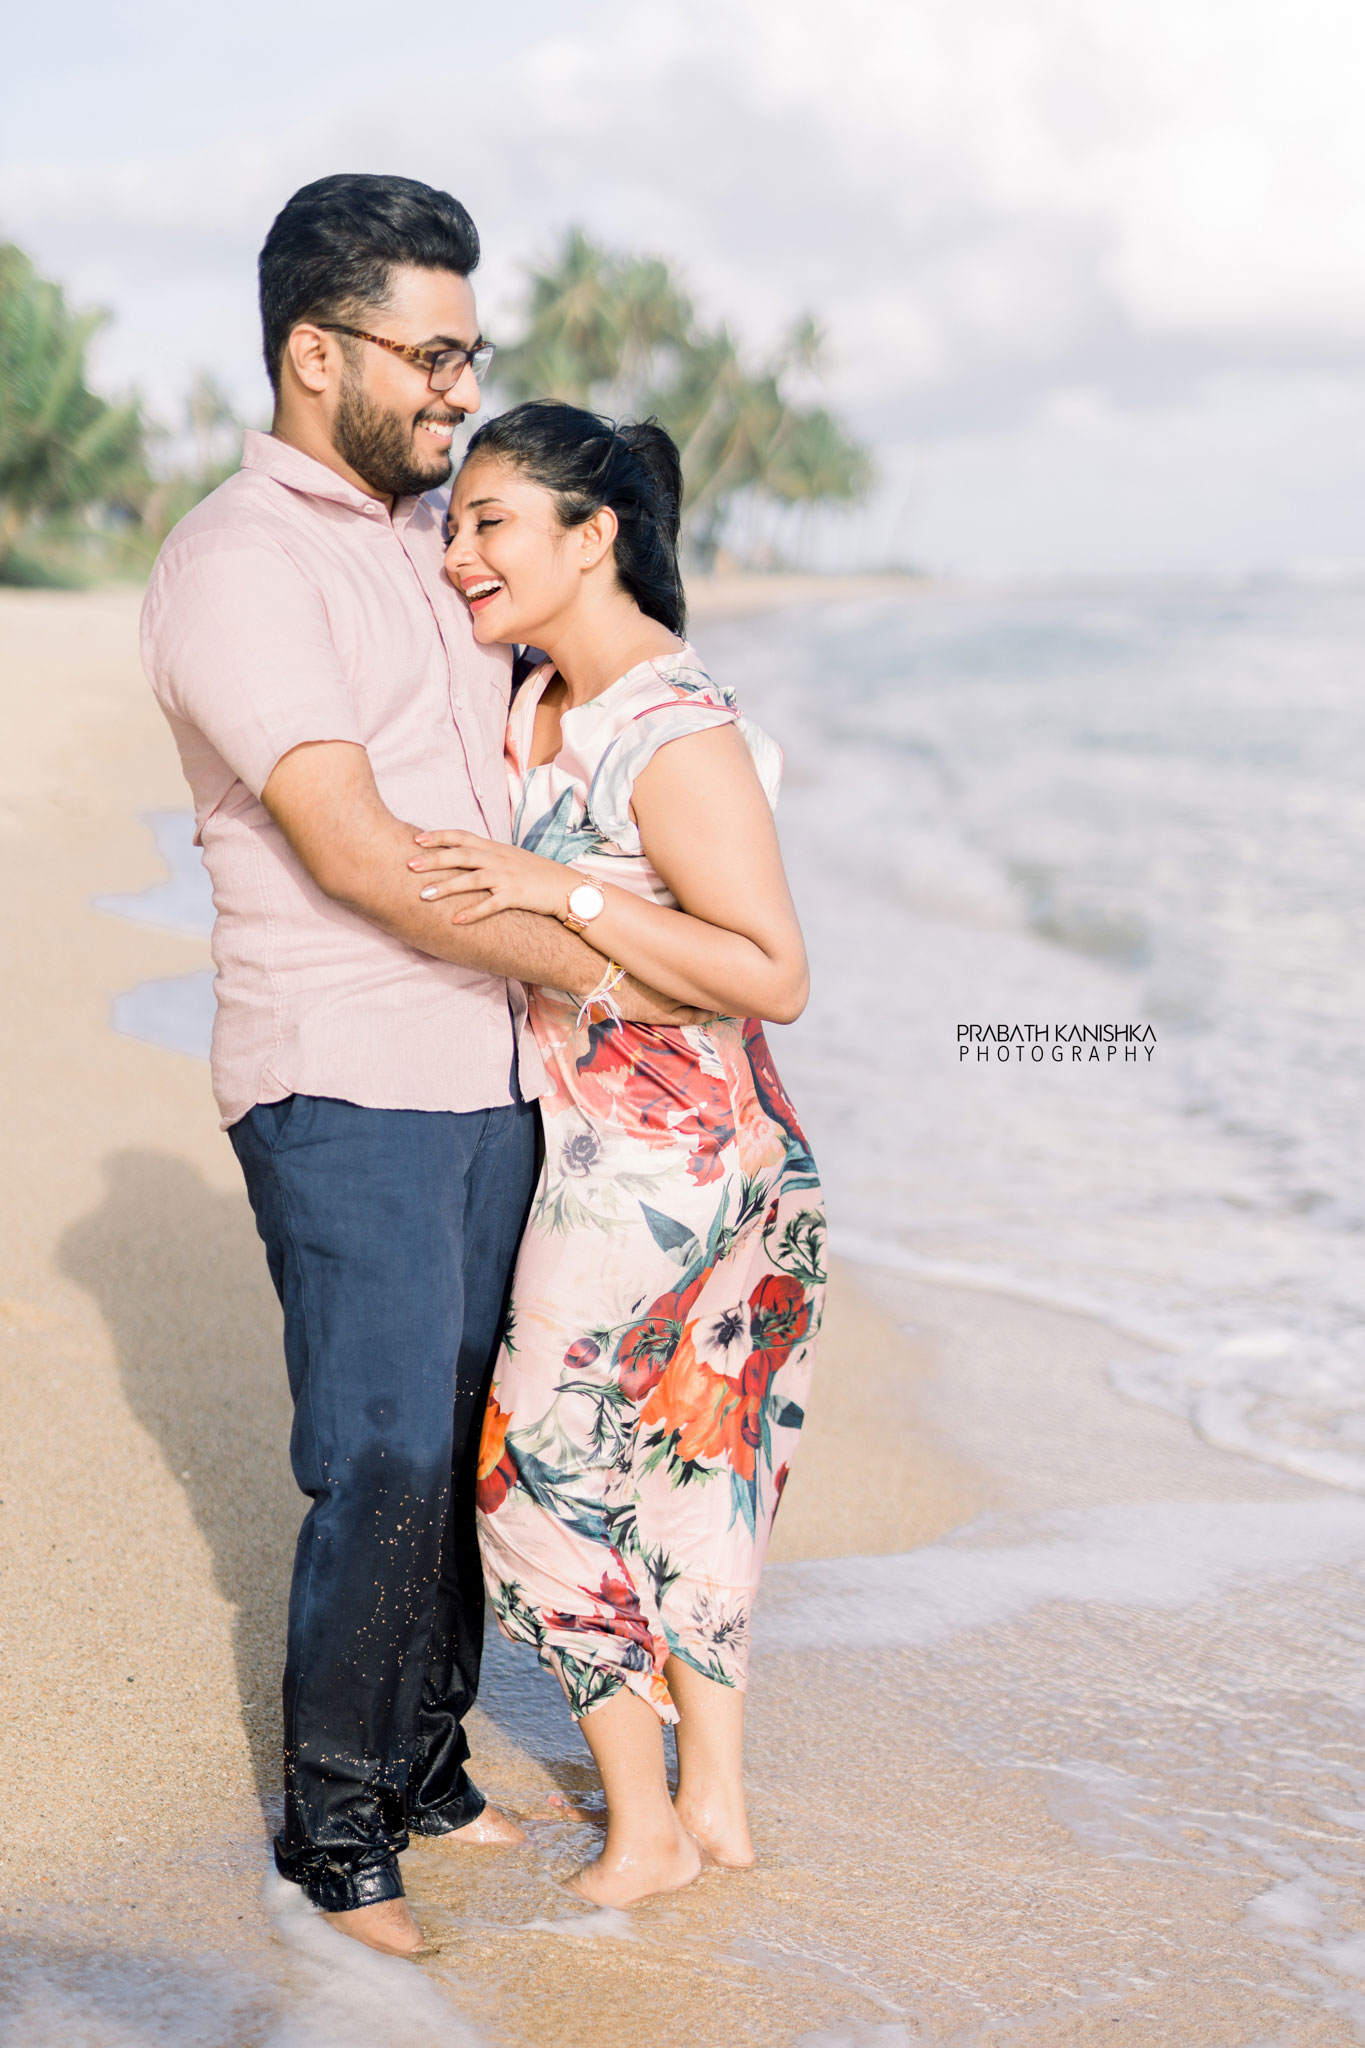 Sandali & Lahiru - Prabath Kanishka Wedding Photography